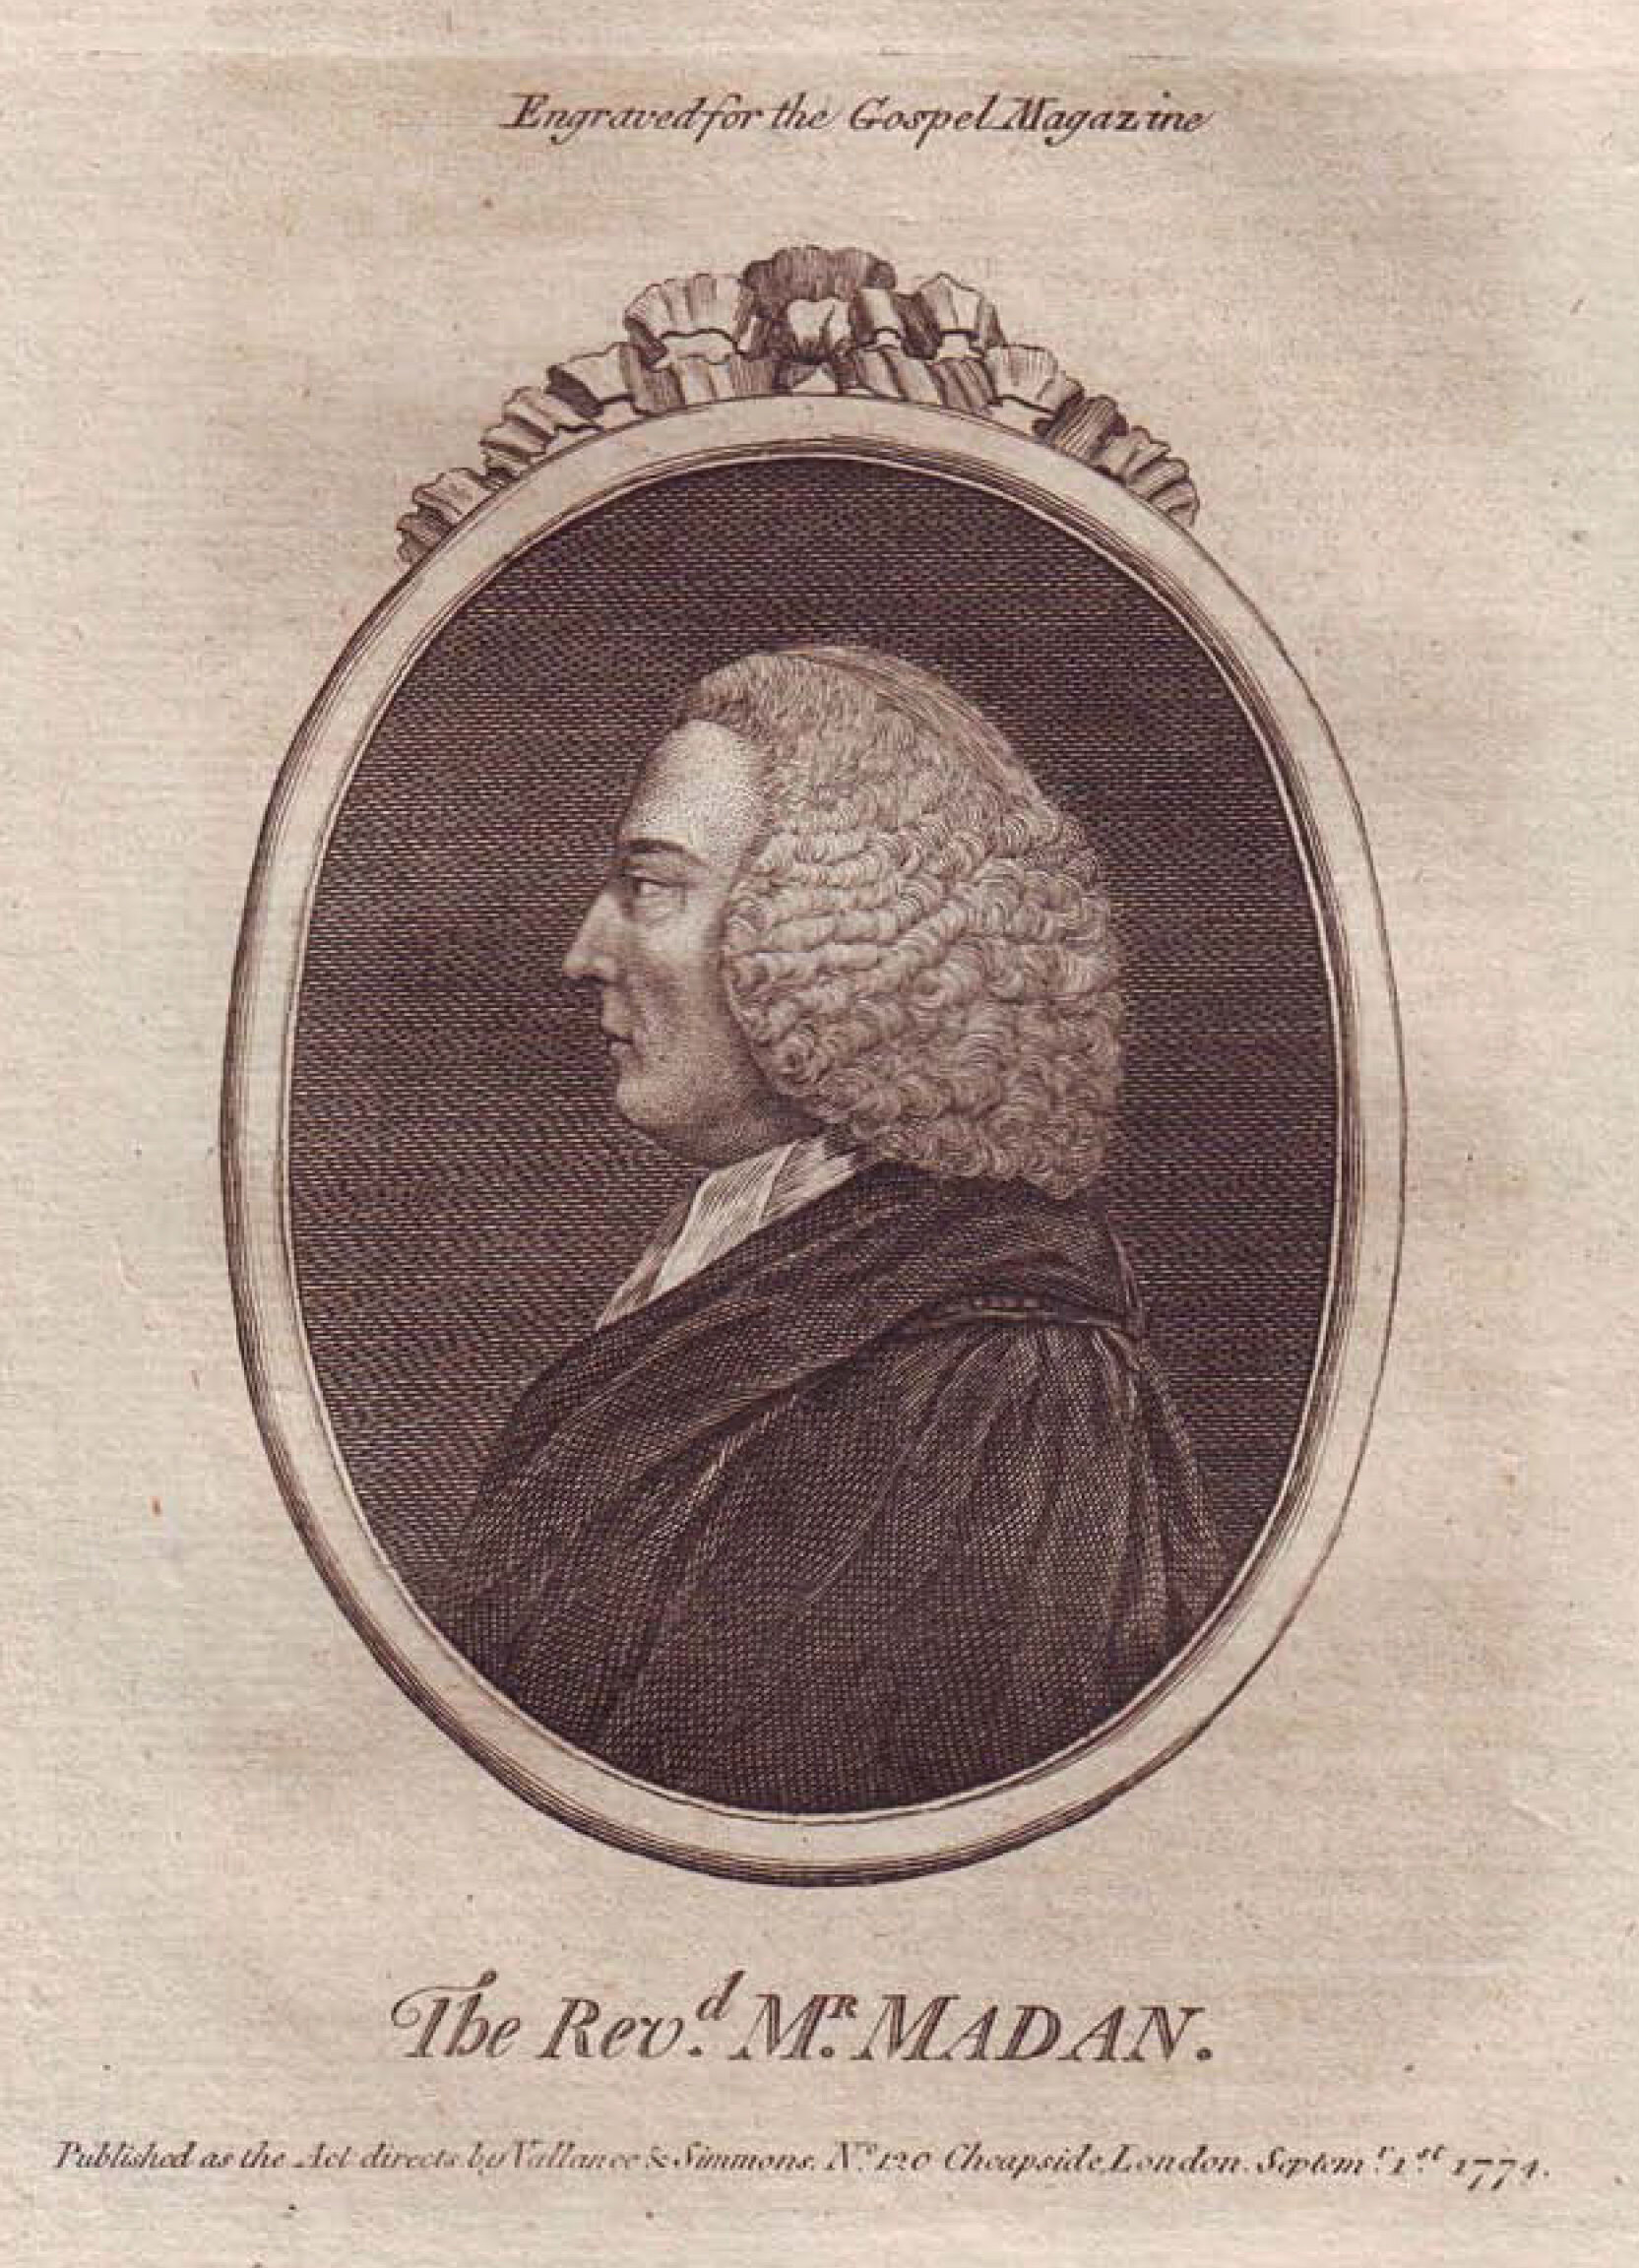 Martin Madan , in  The Gospel Magazine  (August 1774).